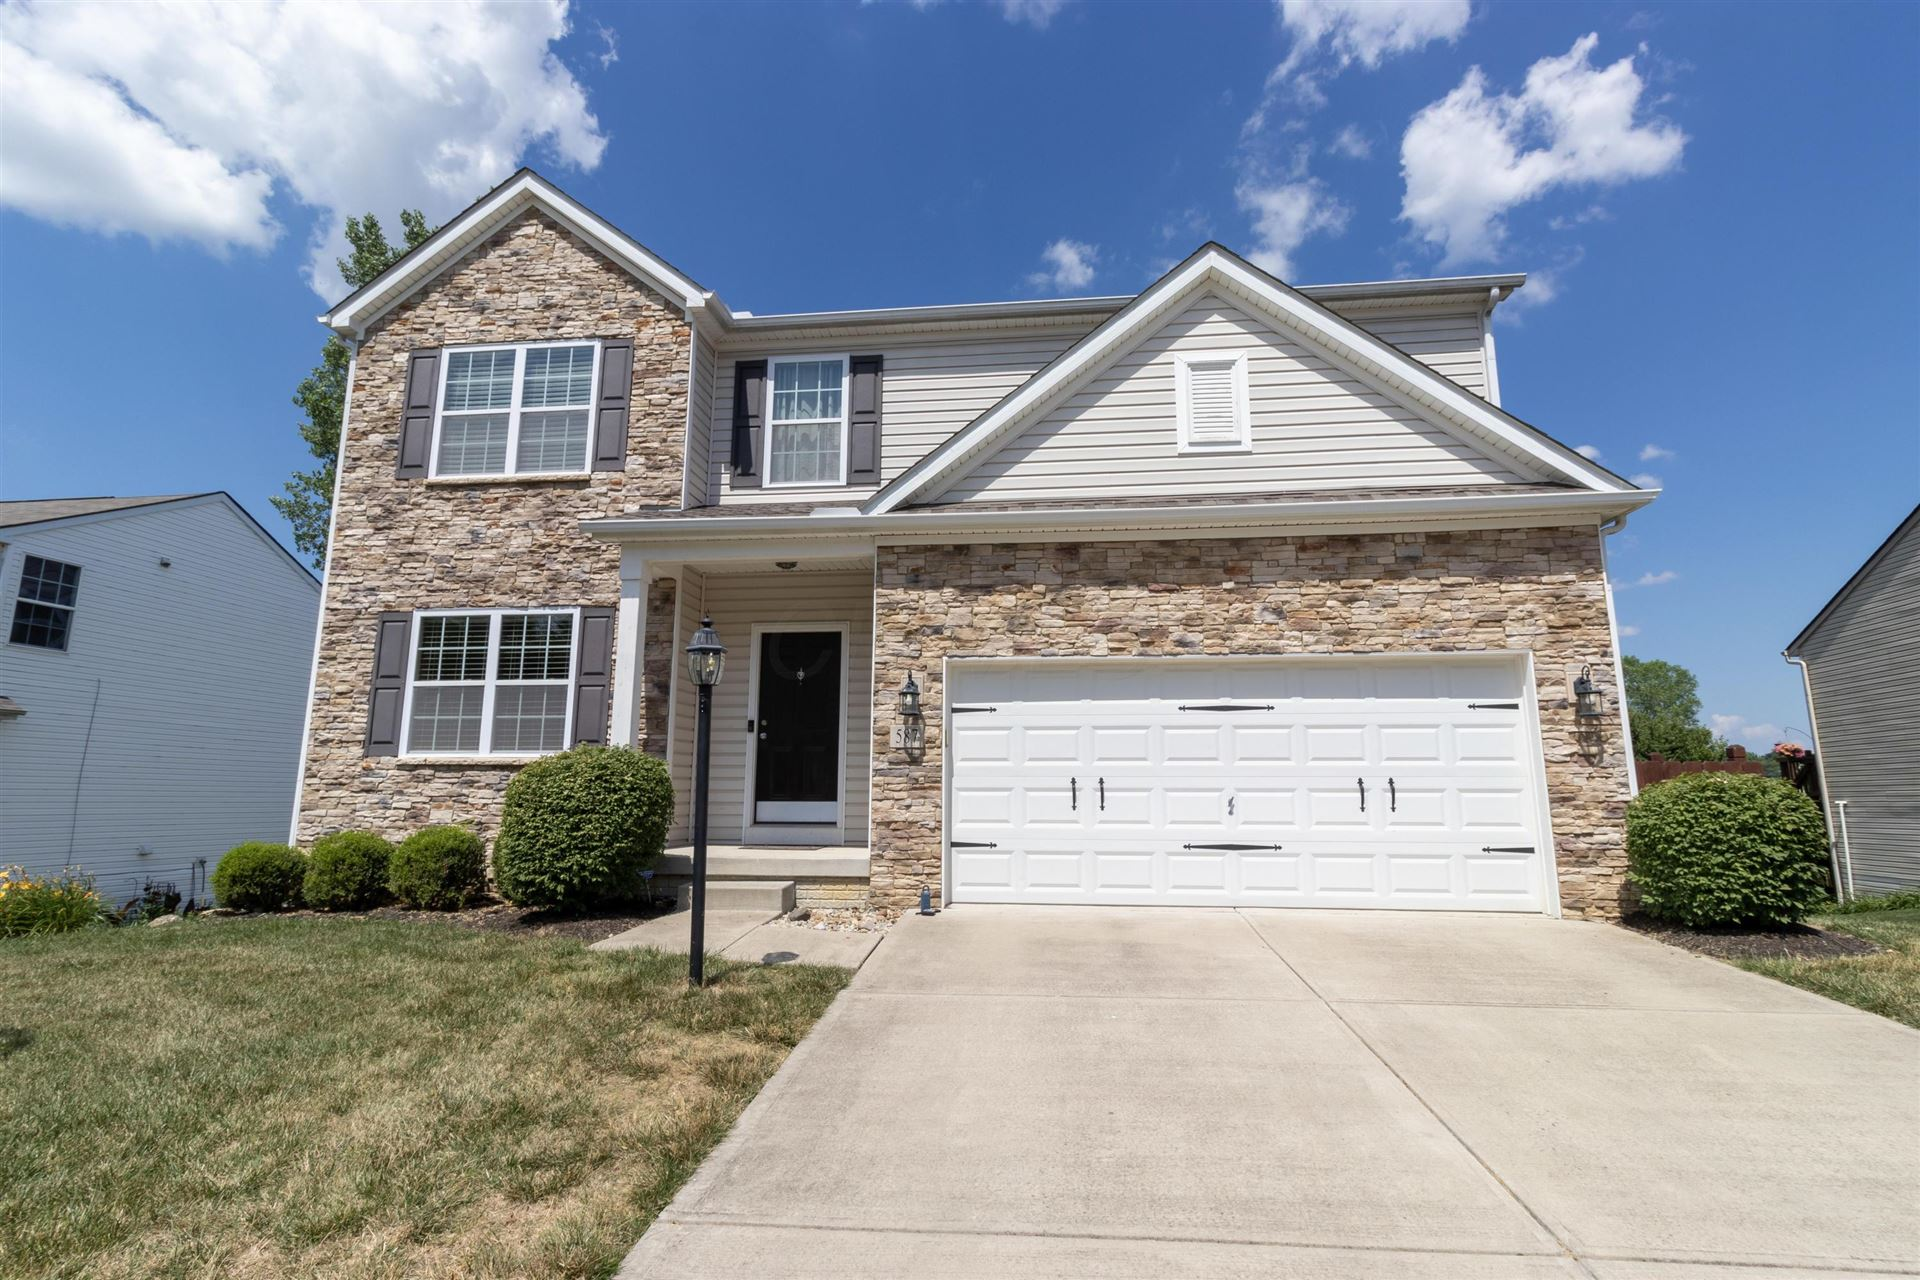 587 Raab Street, Pickerington, OH 43147 - #: 220021628